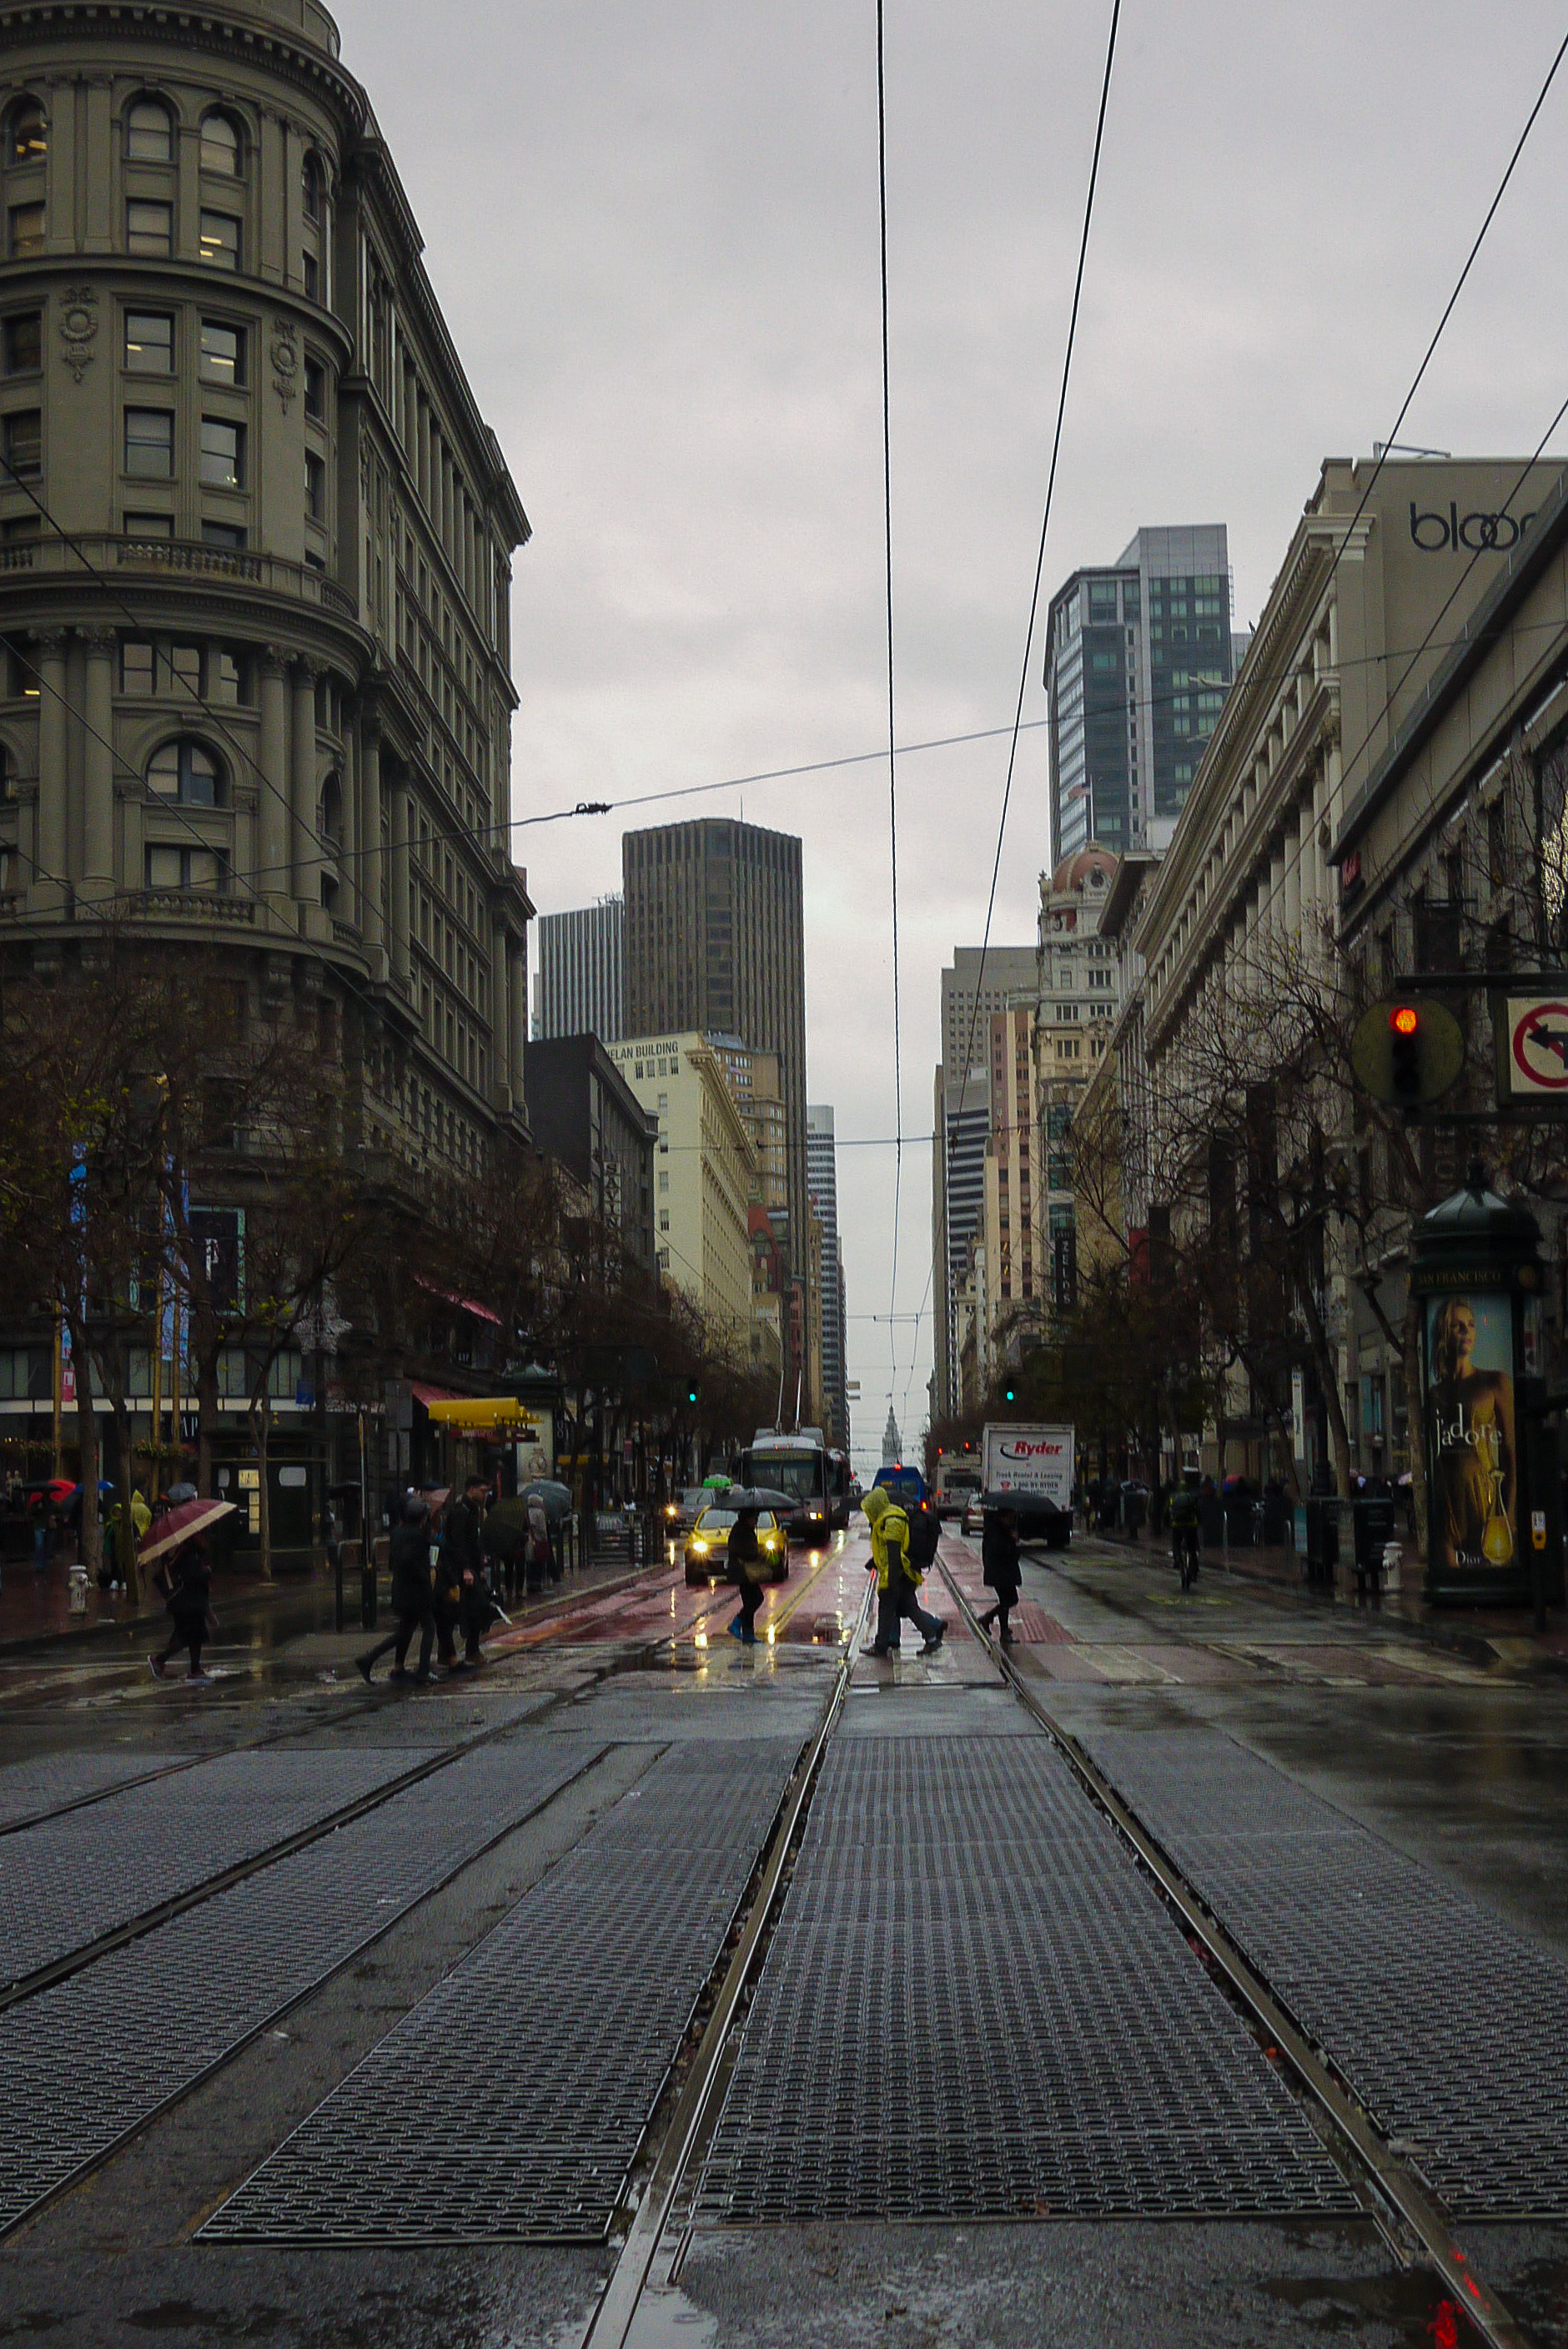 "<p style=""font-family:brandon-grotesque;font-weight:500; font-size:11px; text-center:left; color:light grey;letter-spacing: 1px"">JANUARY 10, 2017 • RAIN FOR DAYS • � San Francisco, CA</p>"